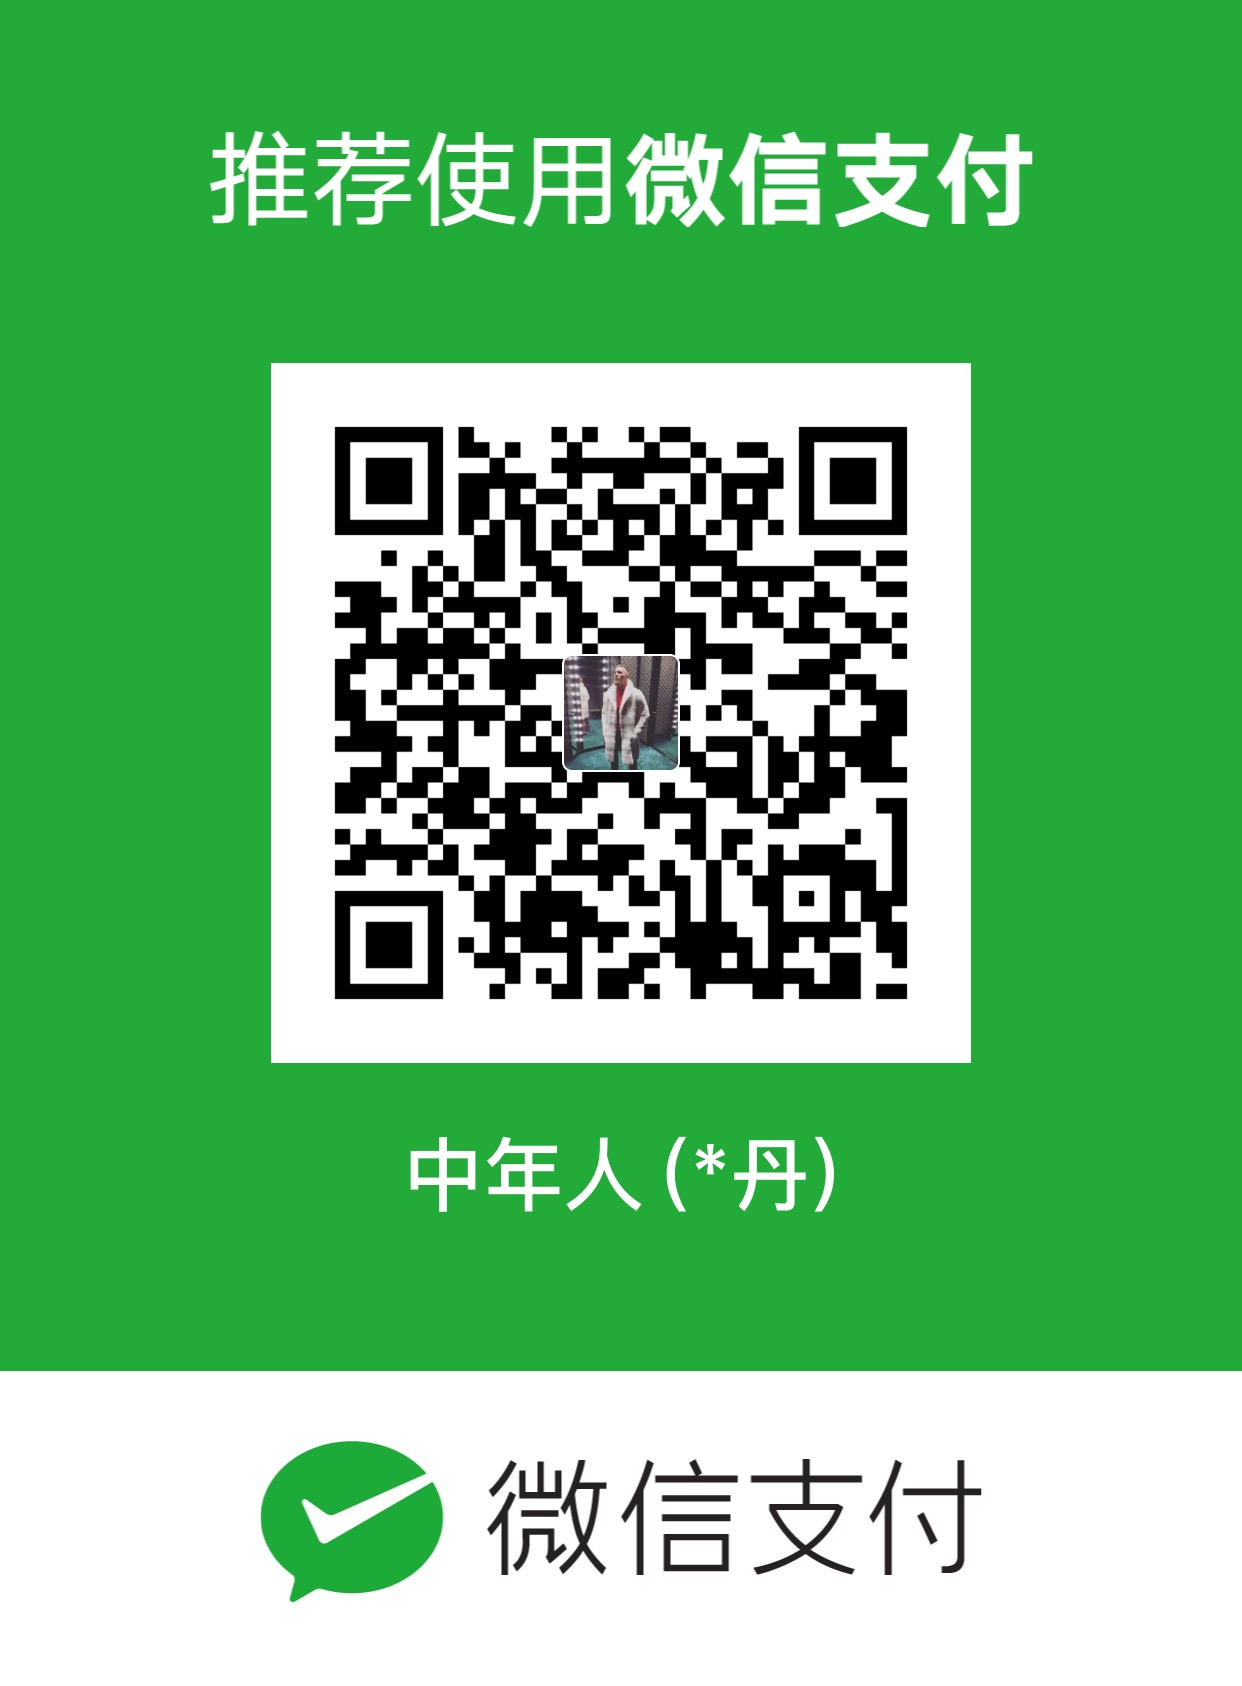 Leo WeChat Pay